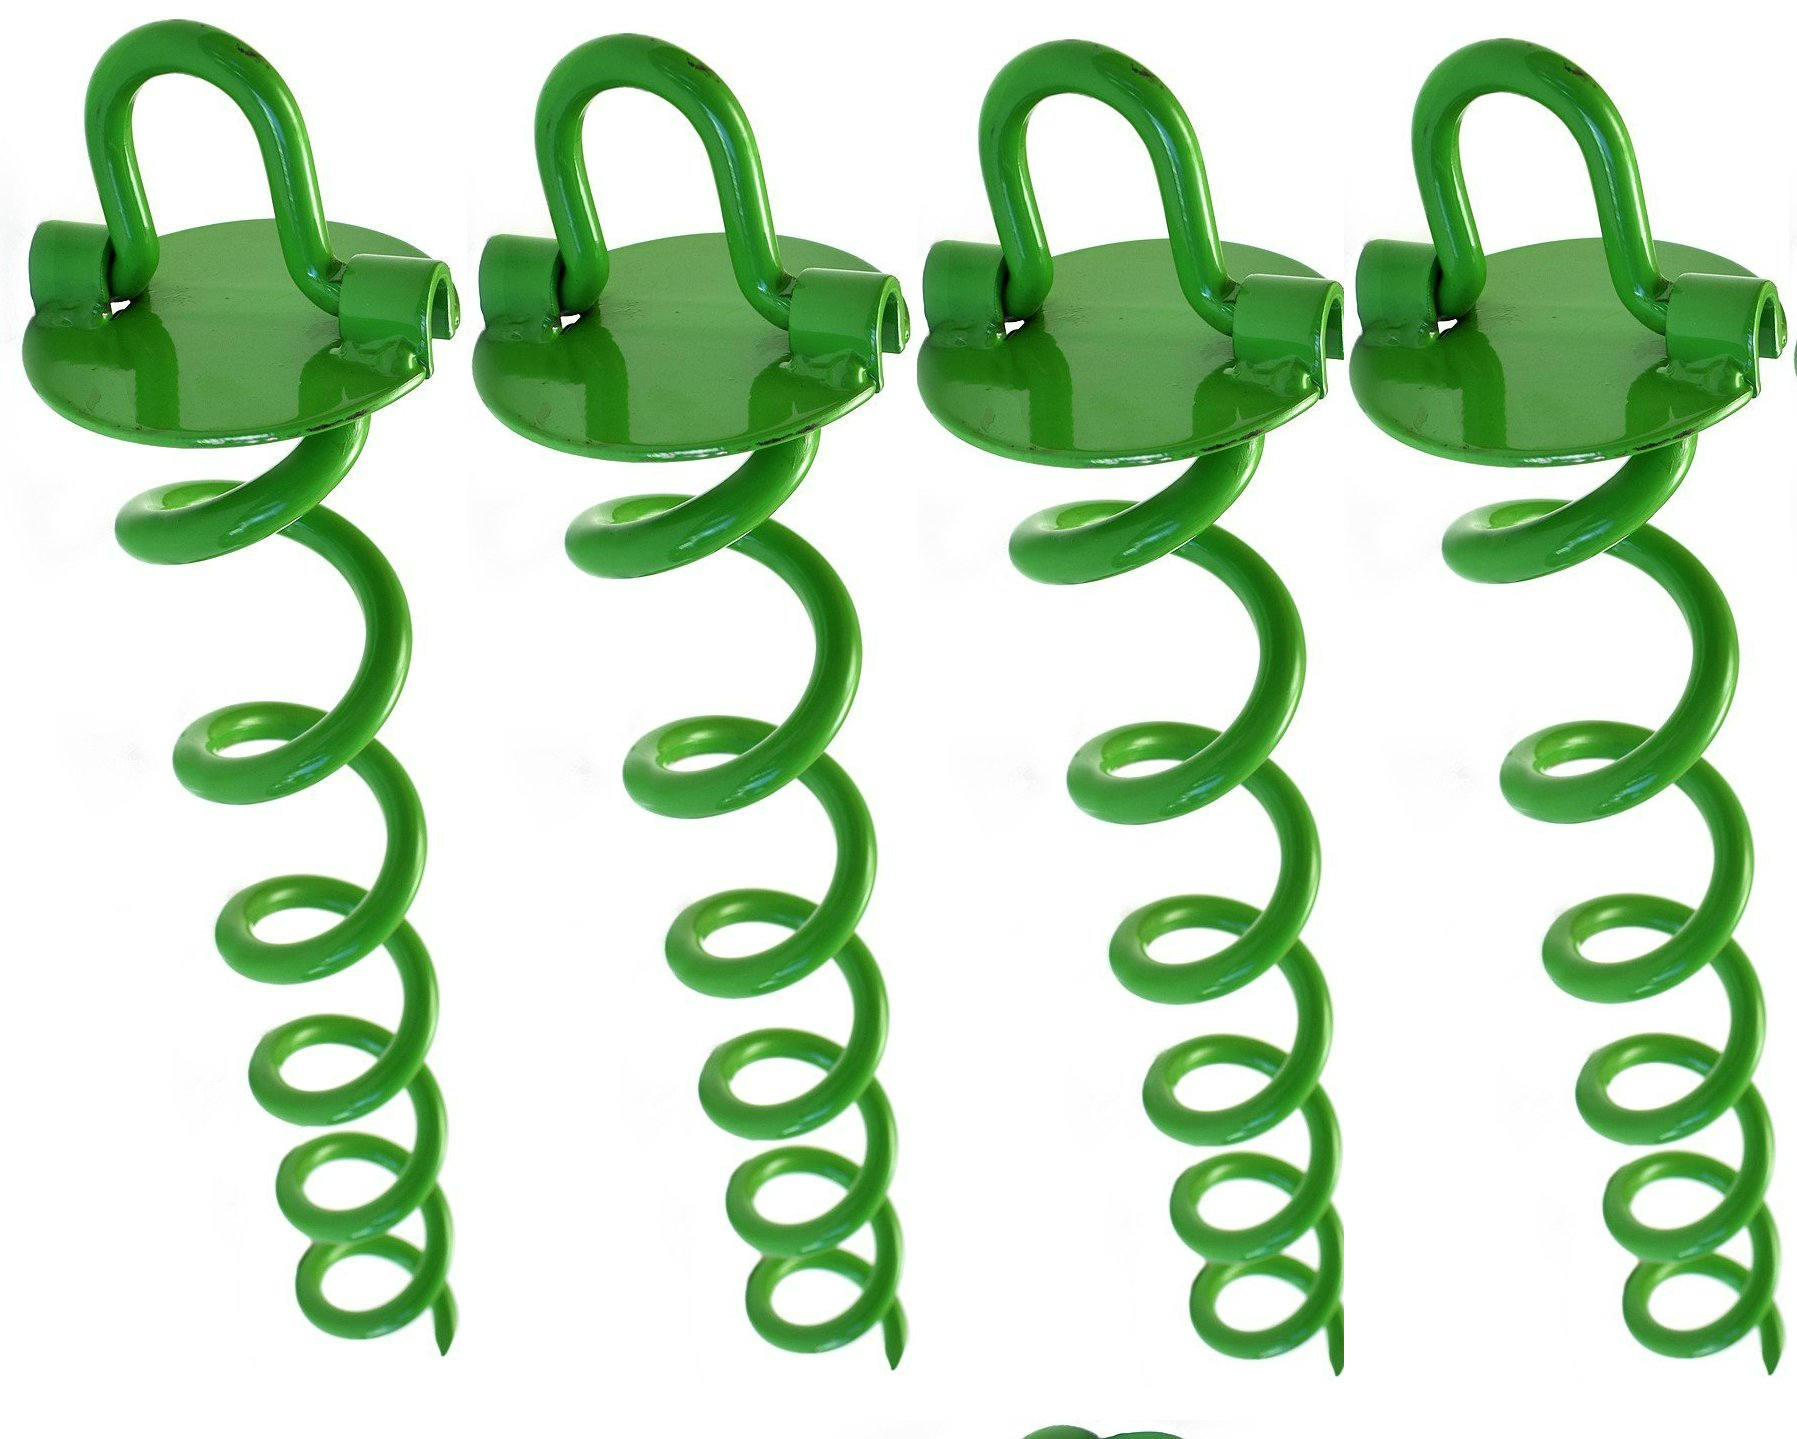 Ashman 16 Inch Spiral Ground Anchor Green Color - Ideal for Securing Animals, Tents, Canopies, Sheds, Car Ports, Swing Sets (Pack of 4) by AshmanOnline